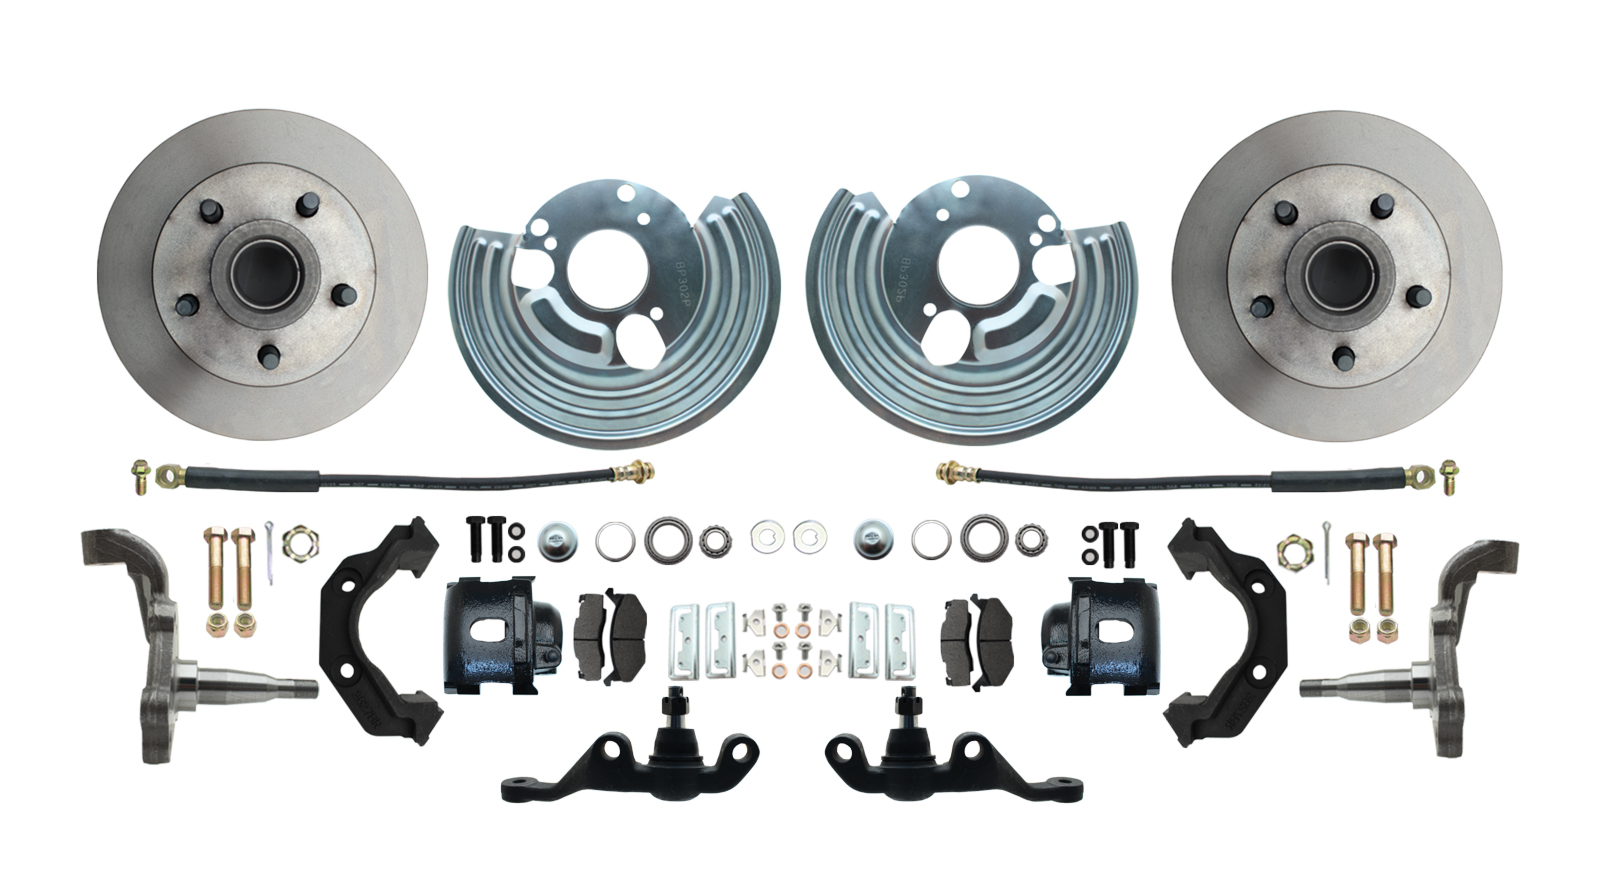 1962-1972 Mopar A Body Small Bolt Pattern Standard Disc Brake Conversion Kit W/ Powder Coated Black Calipers